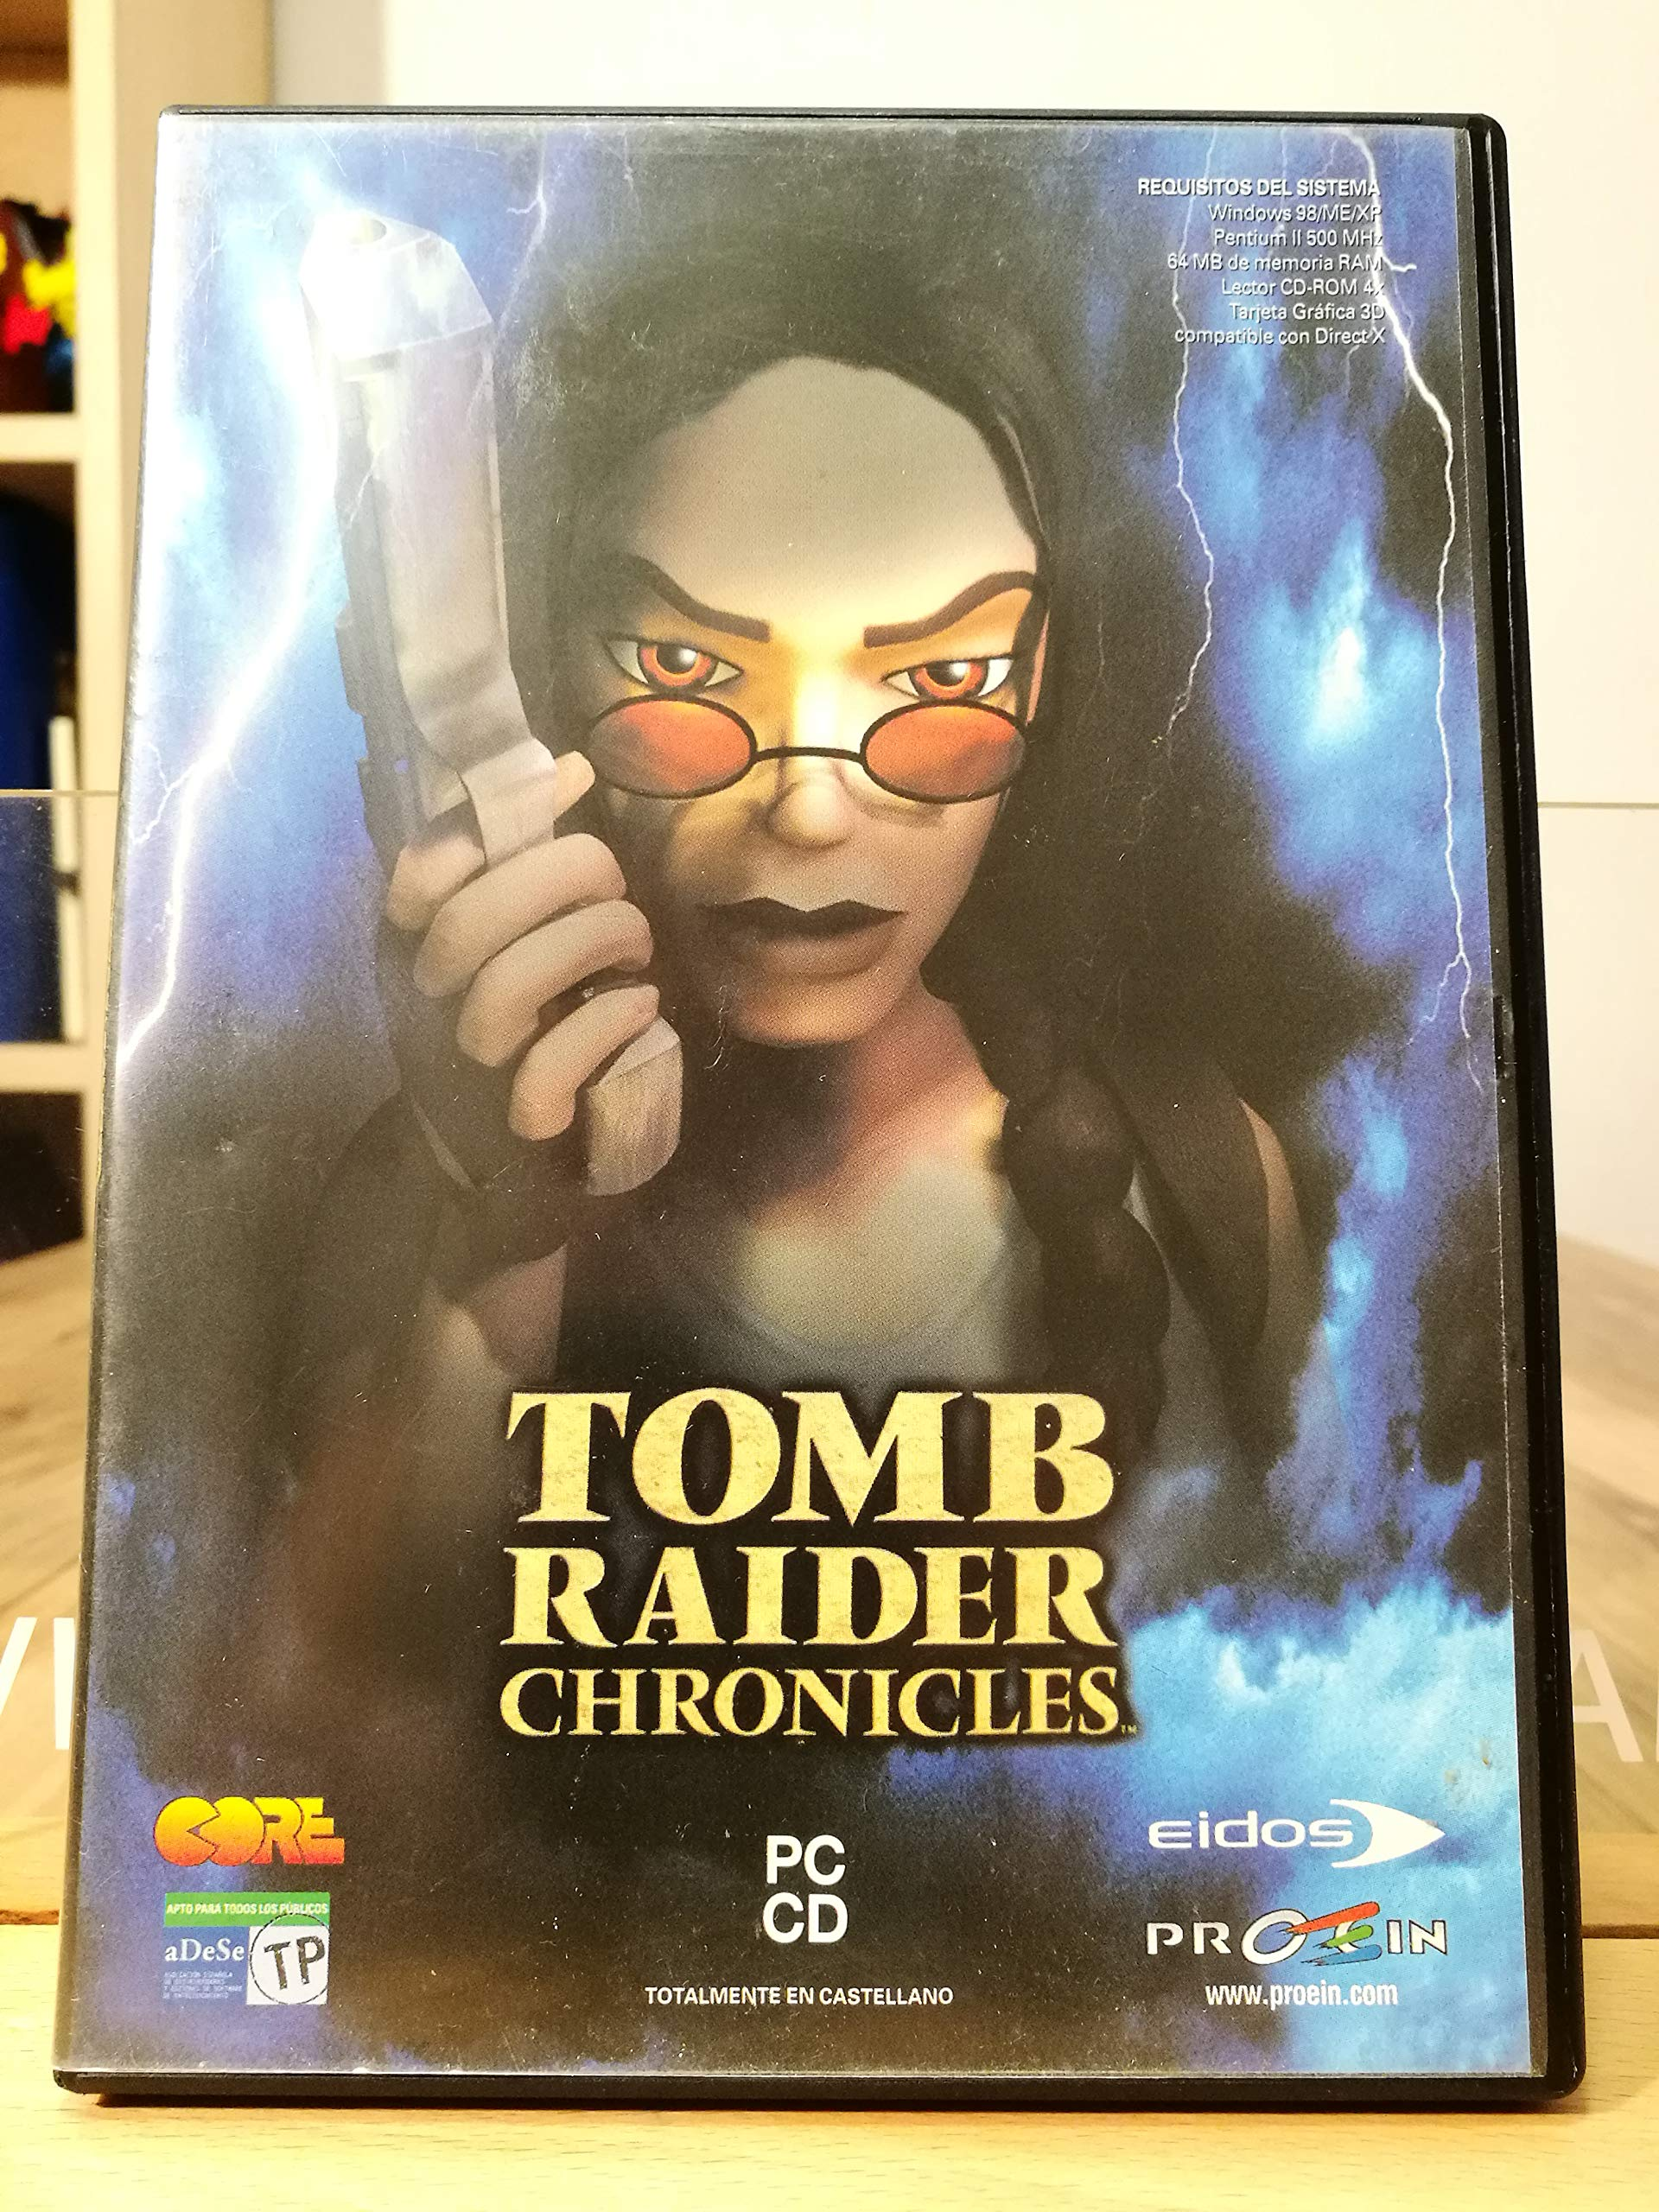 Amazon.com: Tomb Raider Chronicles: Premier Range (DVD ...